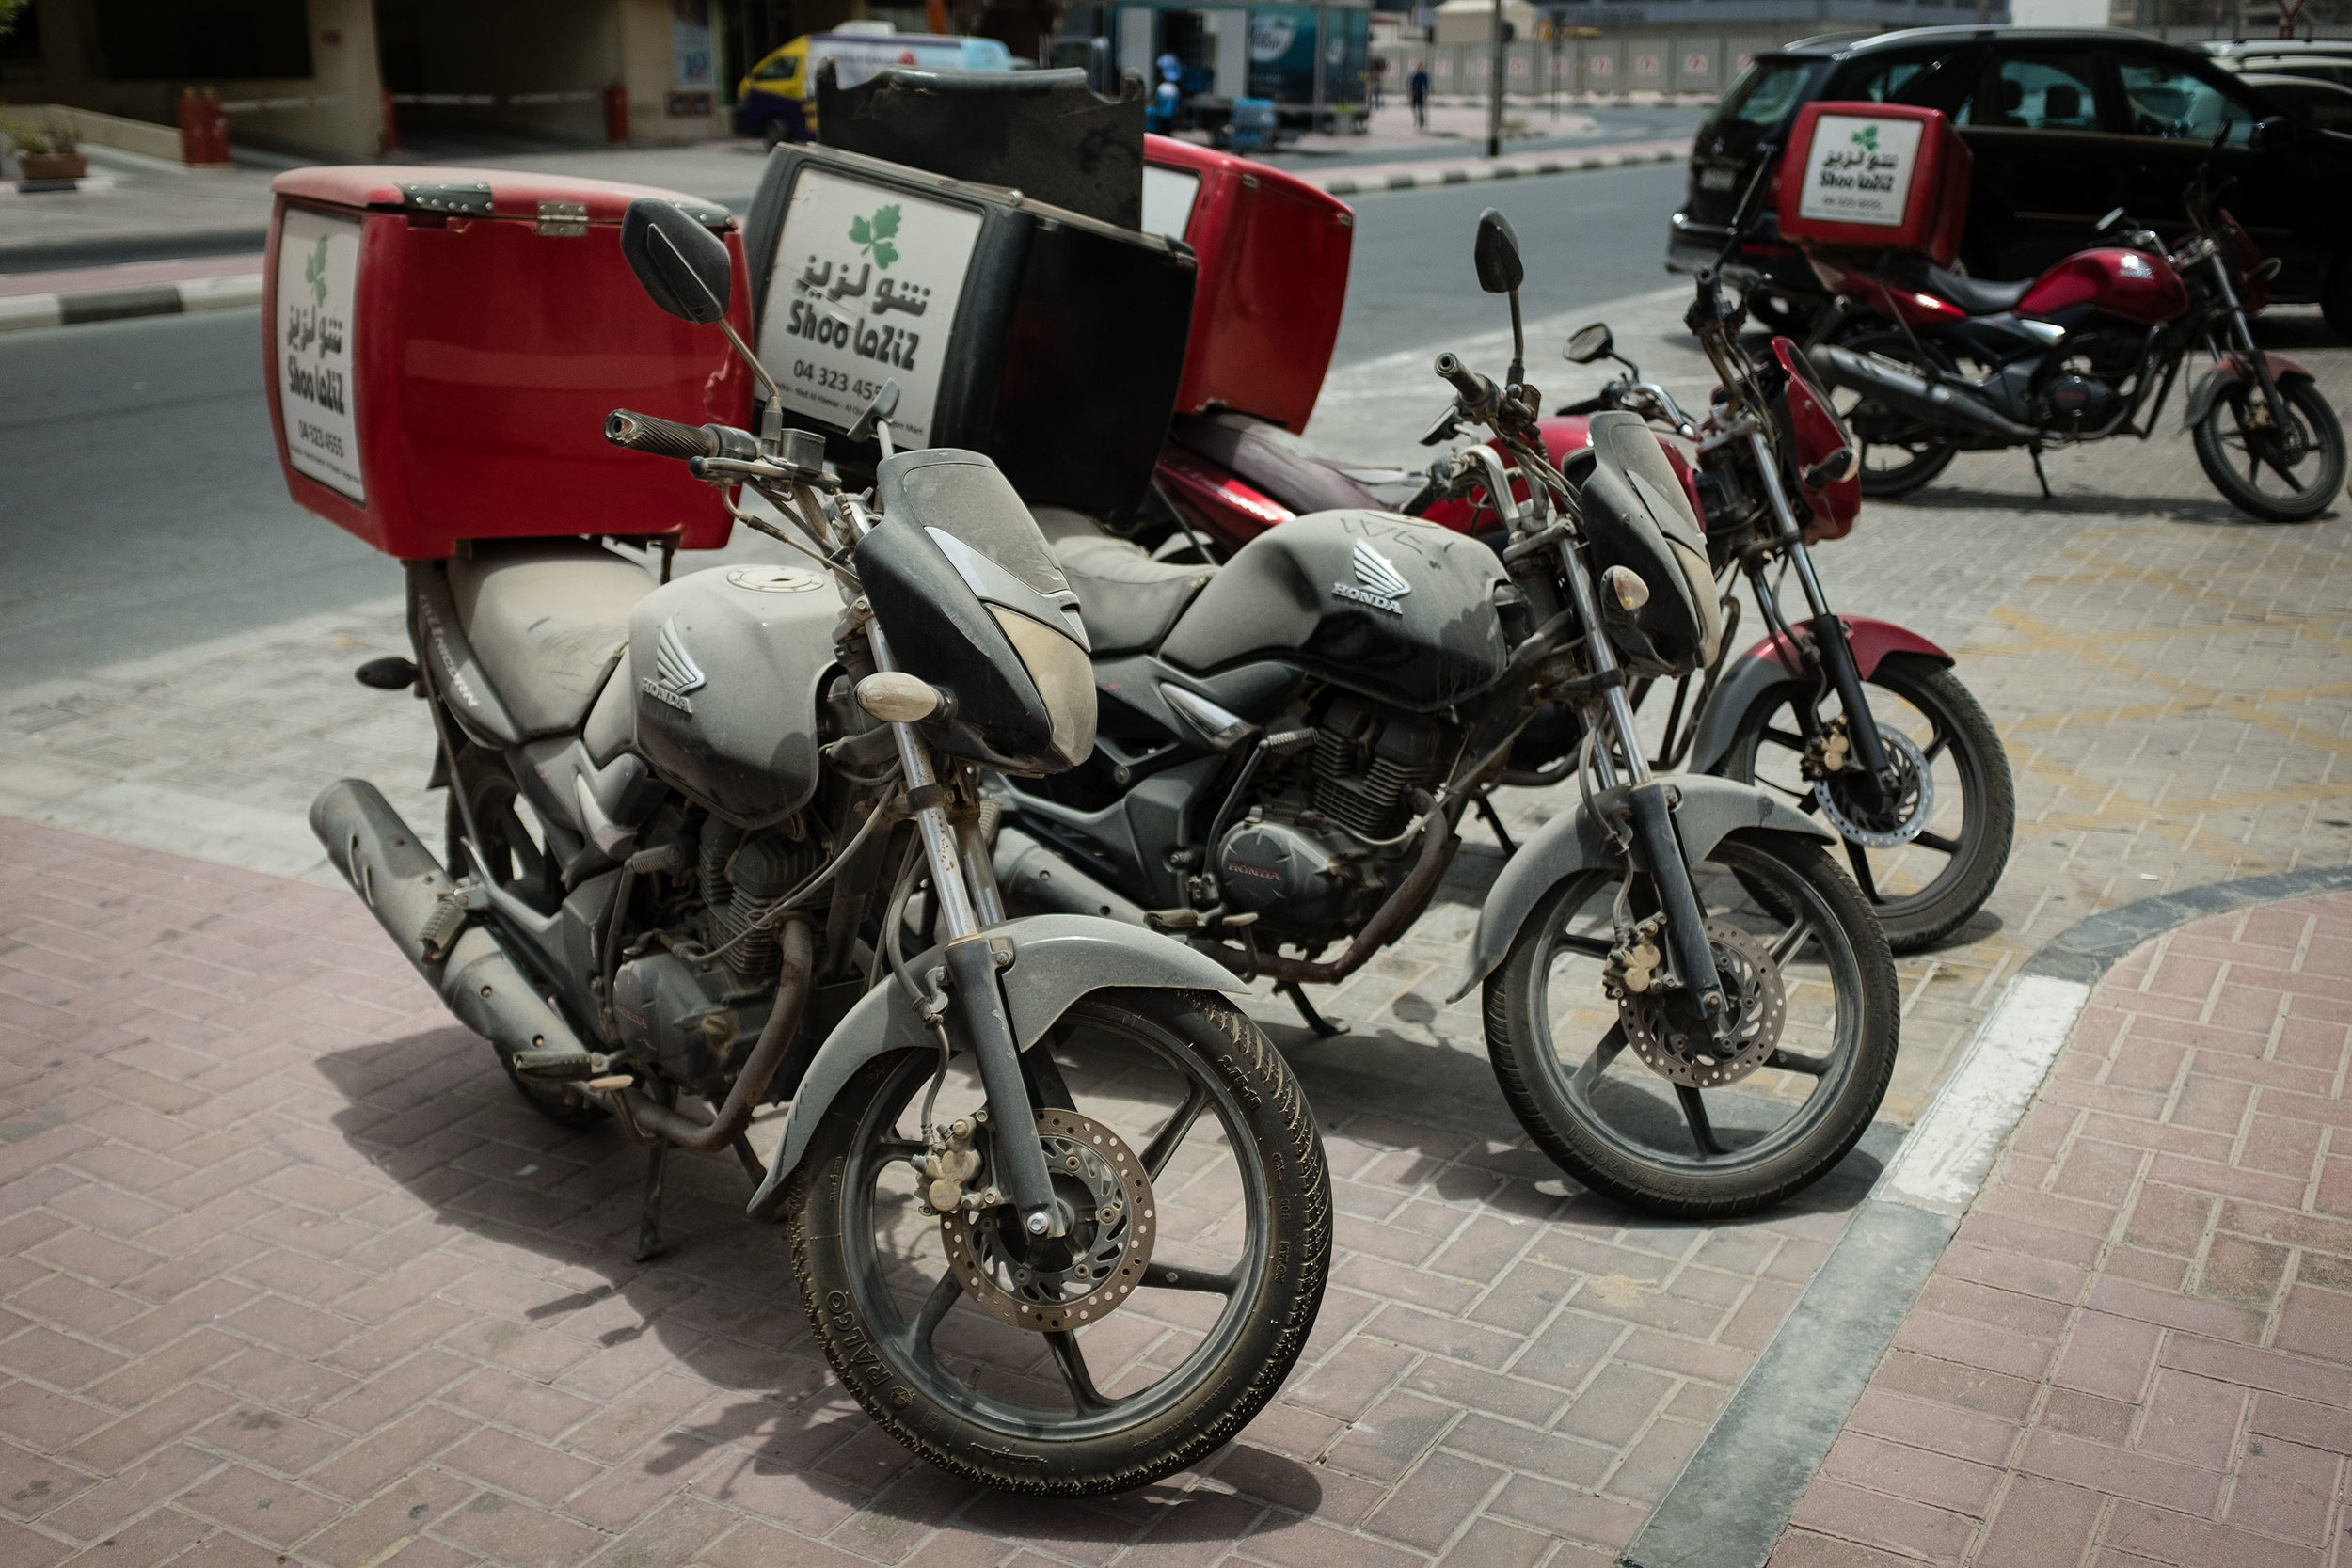 Walking from the metro station to the apartment - abandoned motorcycles - X100T.